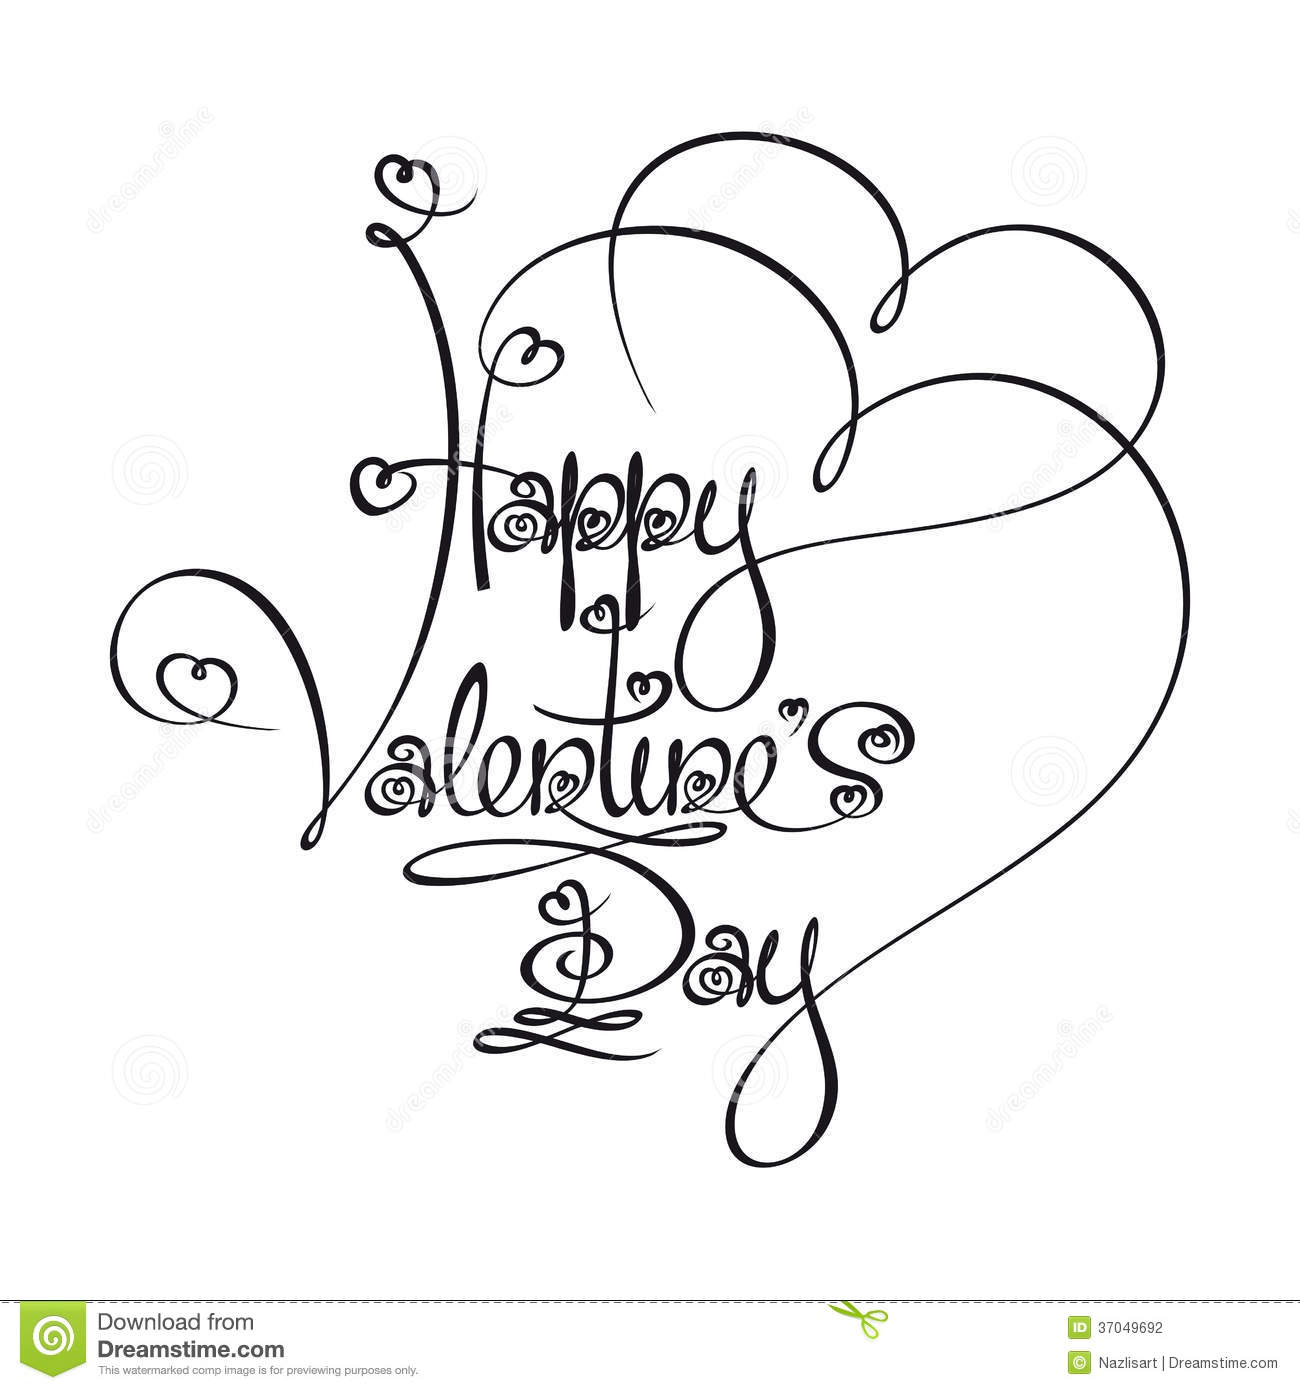 how to write happy valentines day in bubble letters